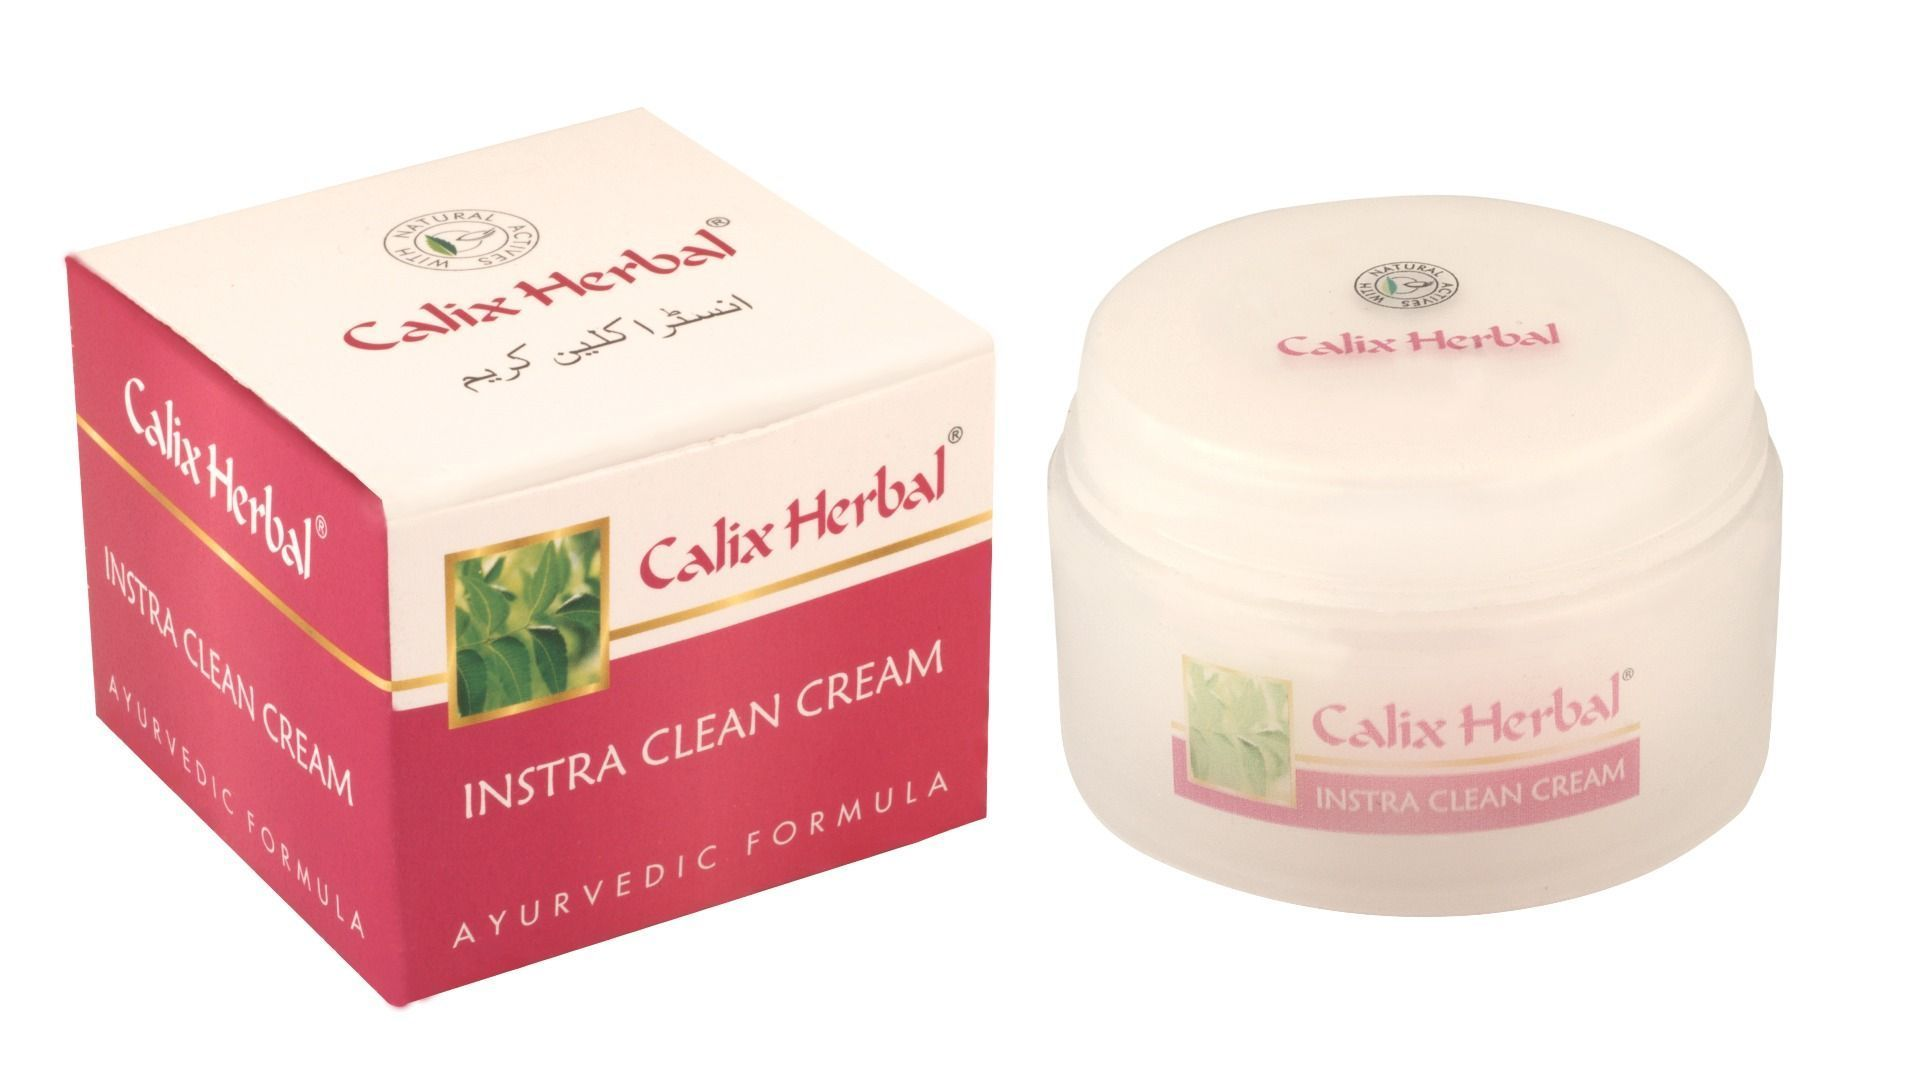 Herbal Instra Clean Cream (50 gm)